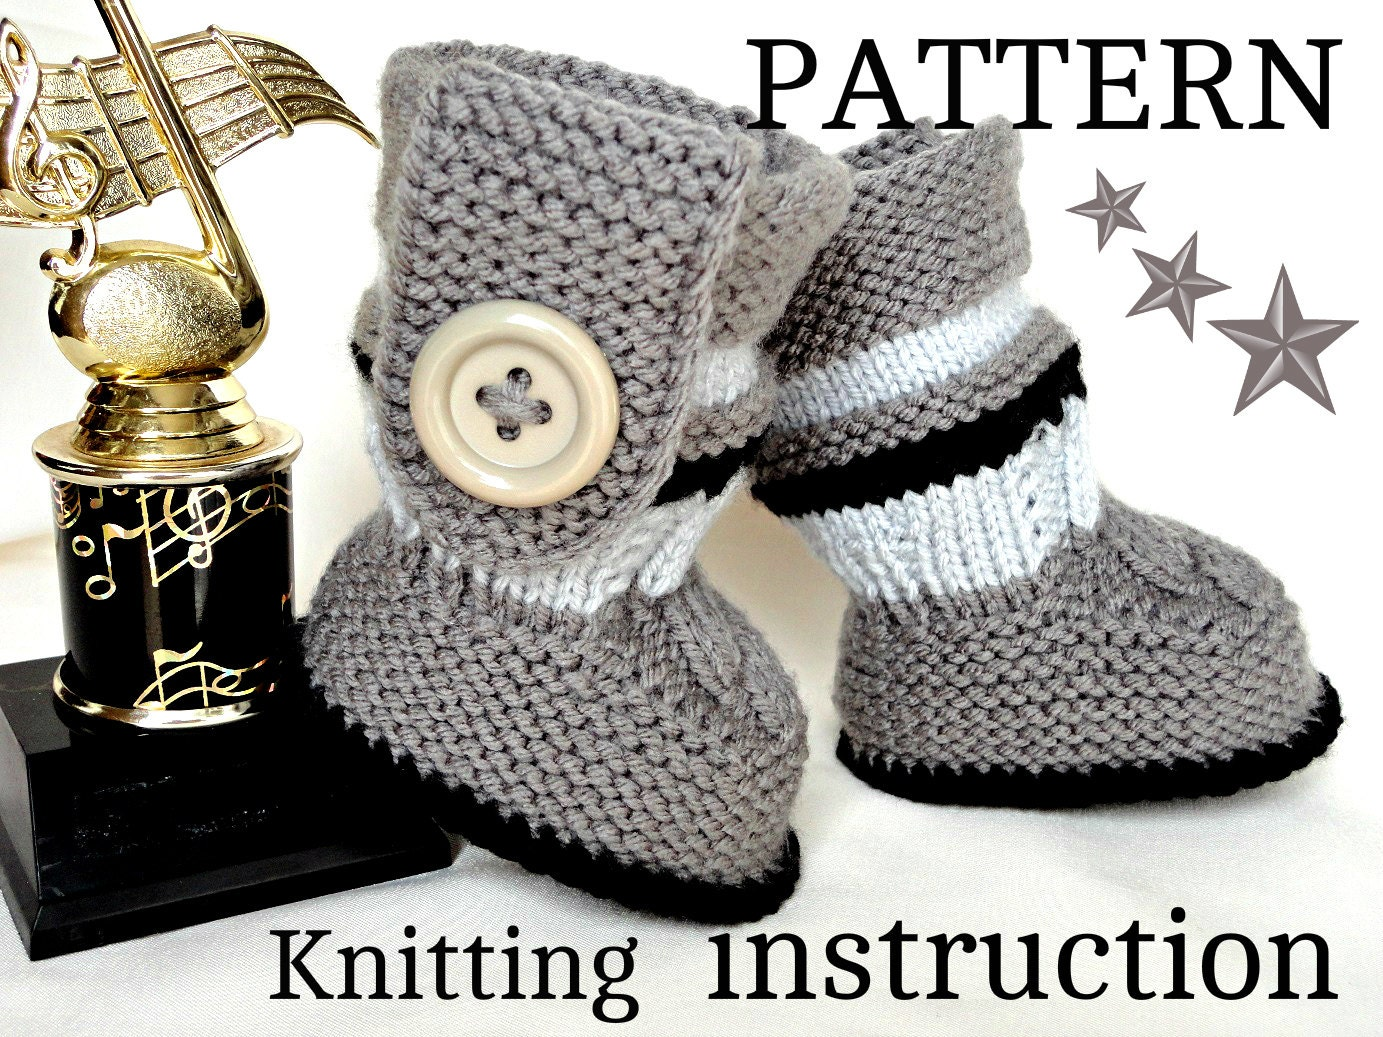 Knitting Pattern For Baby Boy Shoes : Knitting PATTERN Baby Booties PATTERN Knit Baby Shoes Baby Boy Baby Girl Patt...